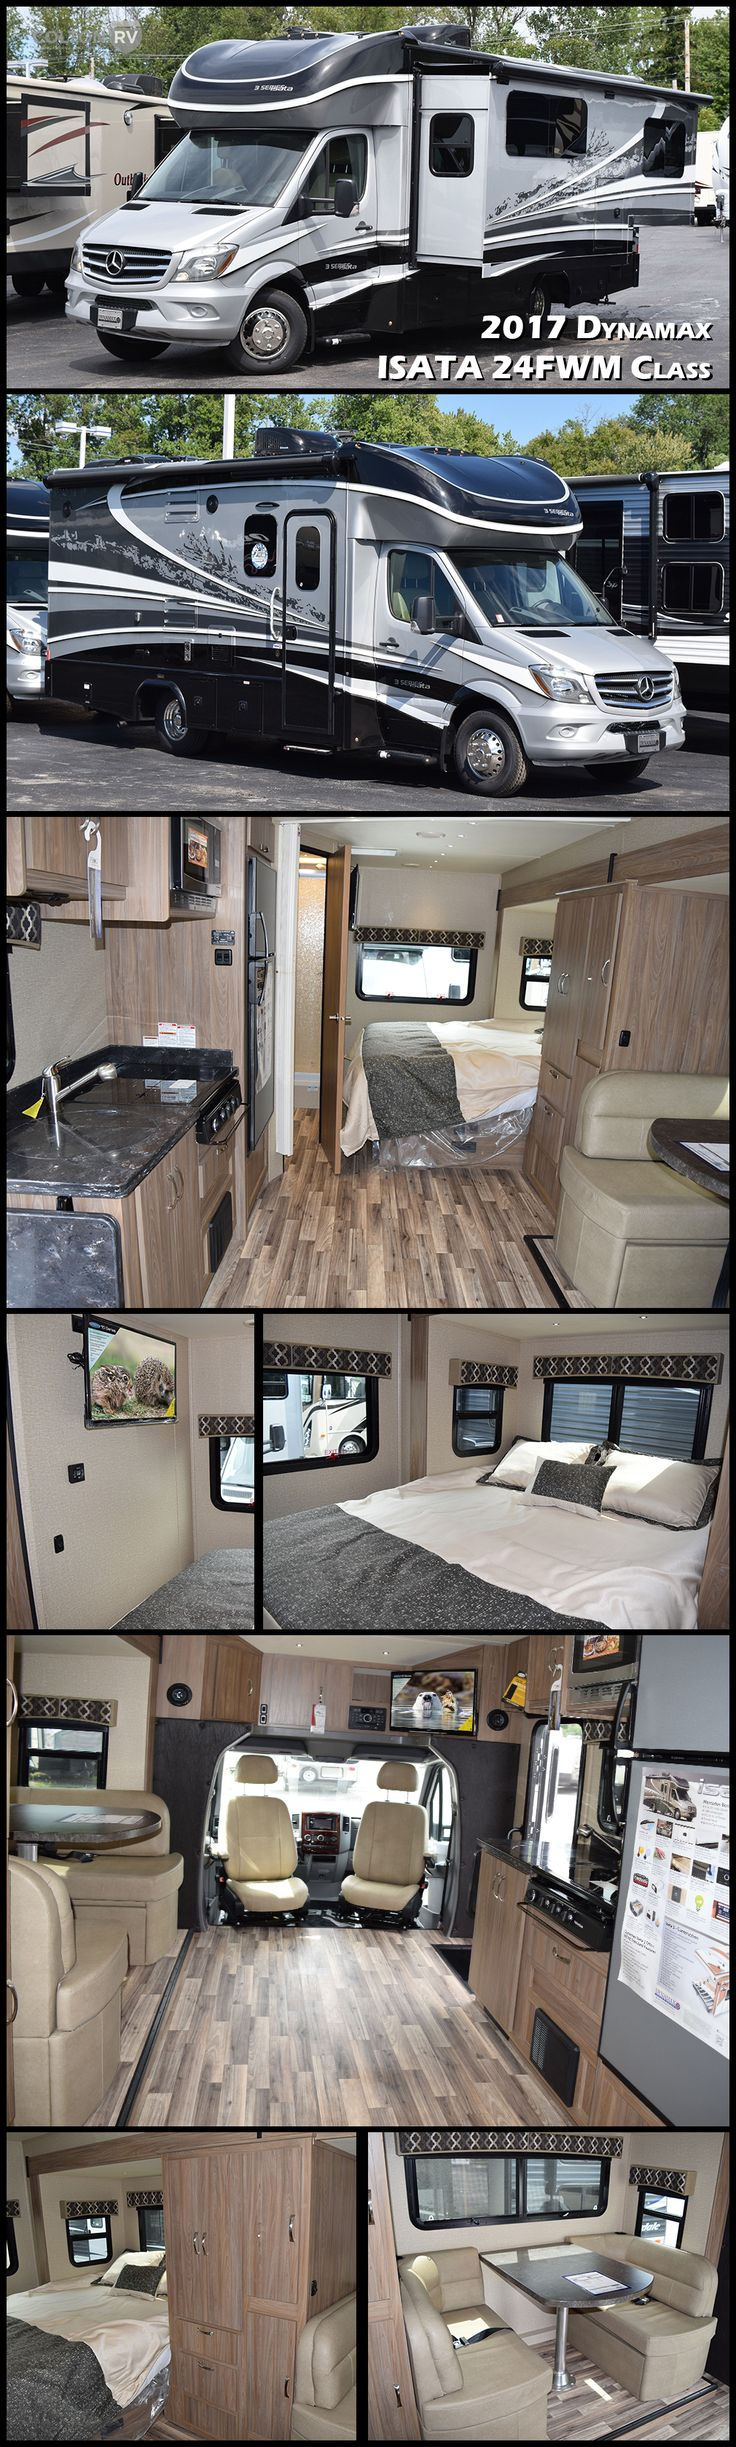 Built on the fuel efficient mercedes sprinter platform the 2017 dynamax isata 3 model class c motorhome embodies everything you love about dynamax